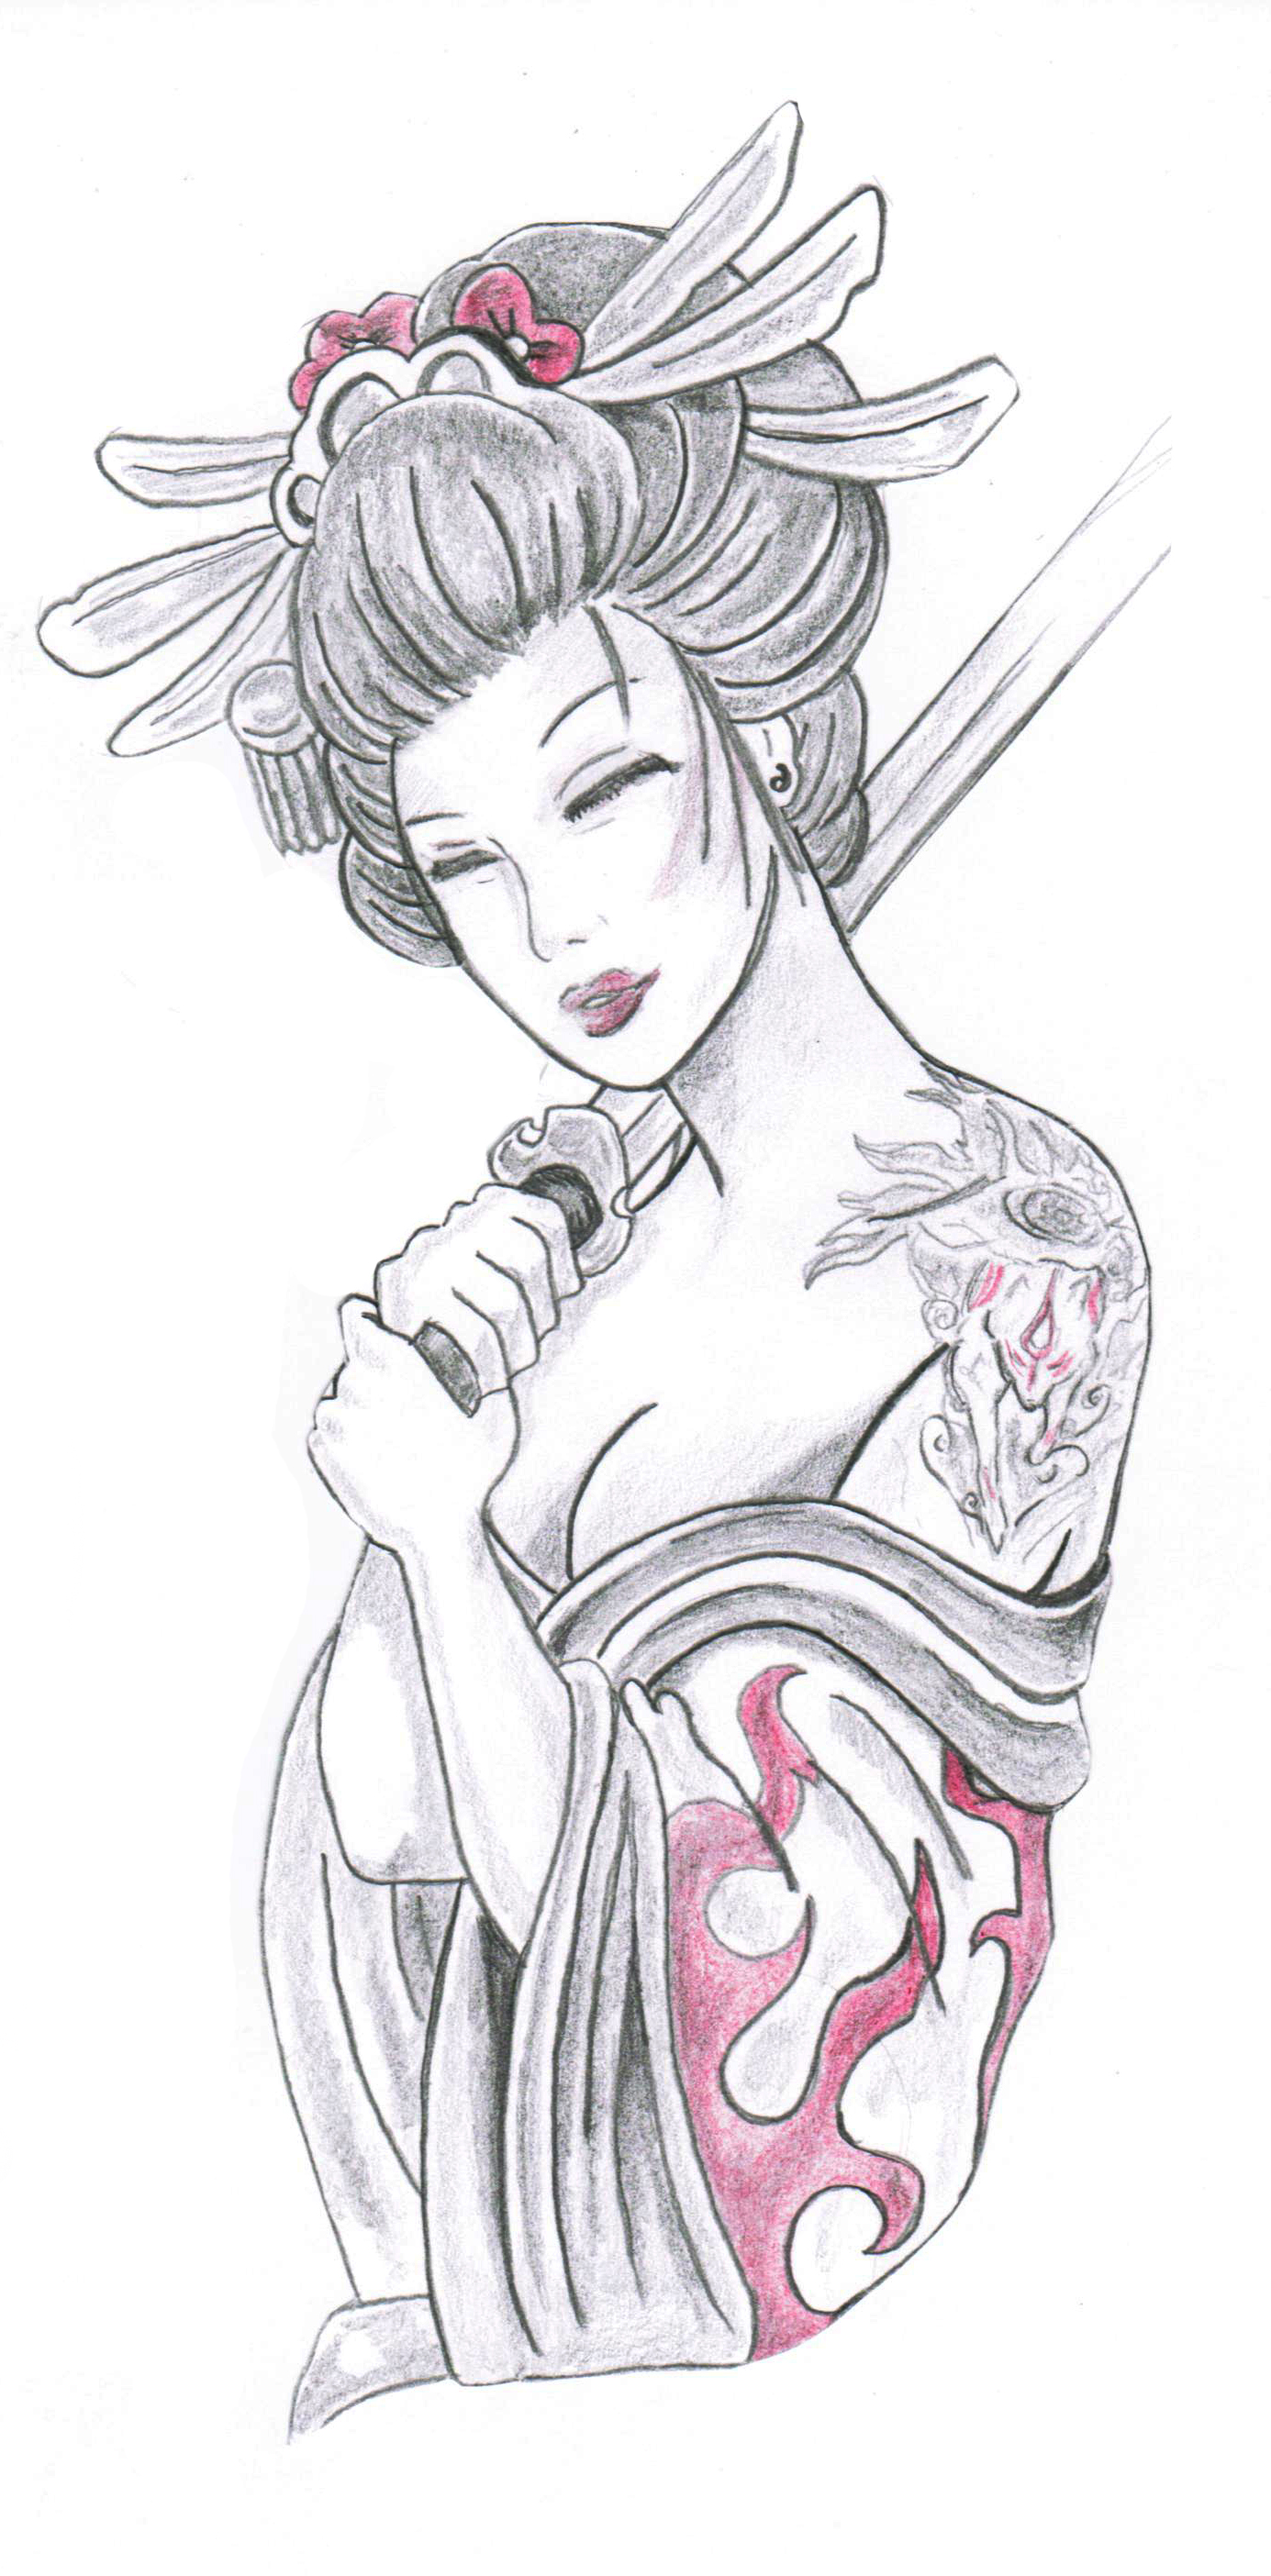 Geisha Holding Sword Tattoo Design